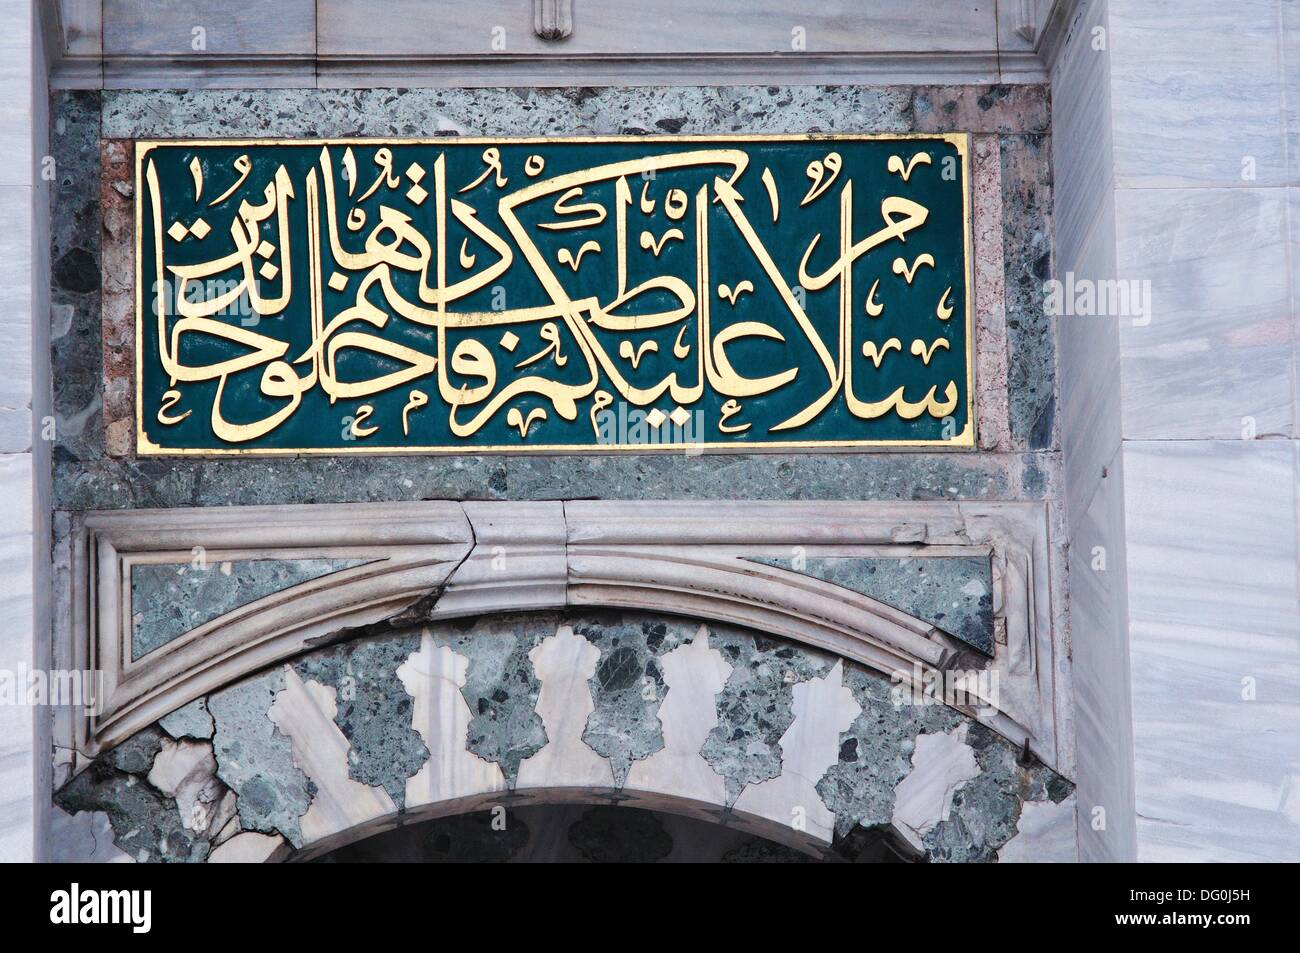 Turkey, Istanbul, Bayezit Mosque, Lettering at the front gate - Stock Image